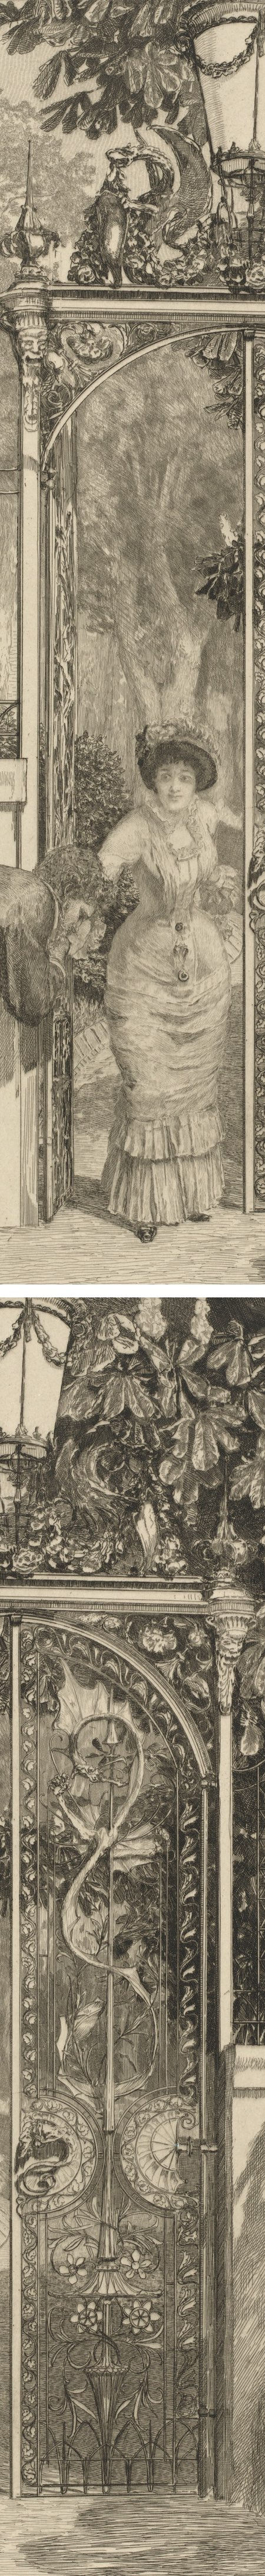 At the Gate (Am Thor), Max Klinger; etching and engraving (details)